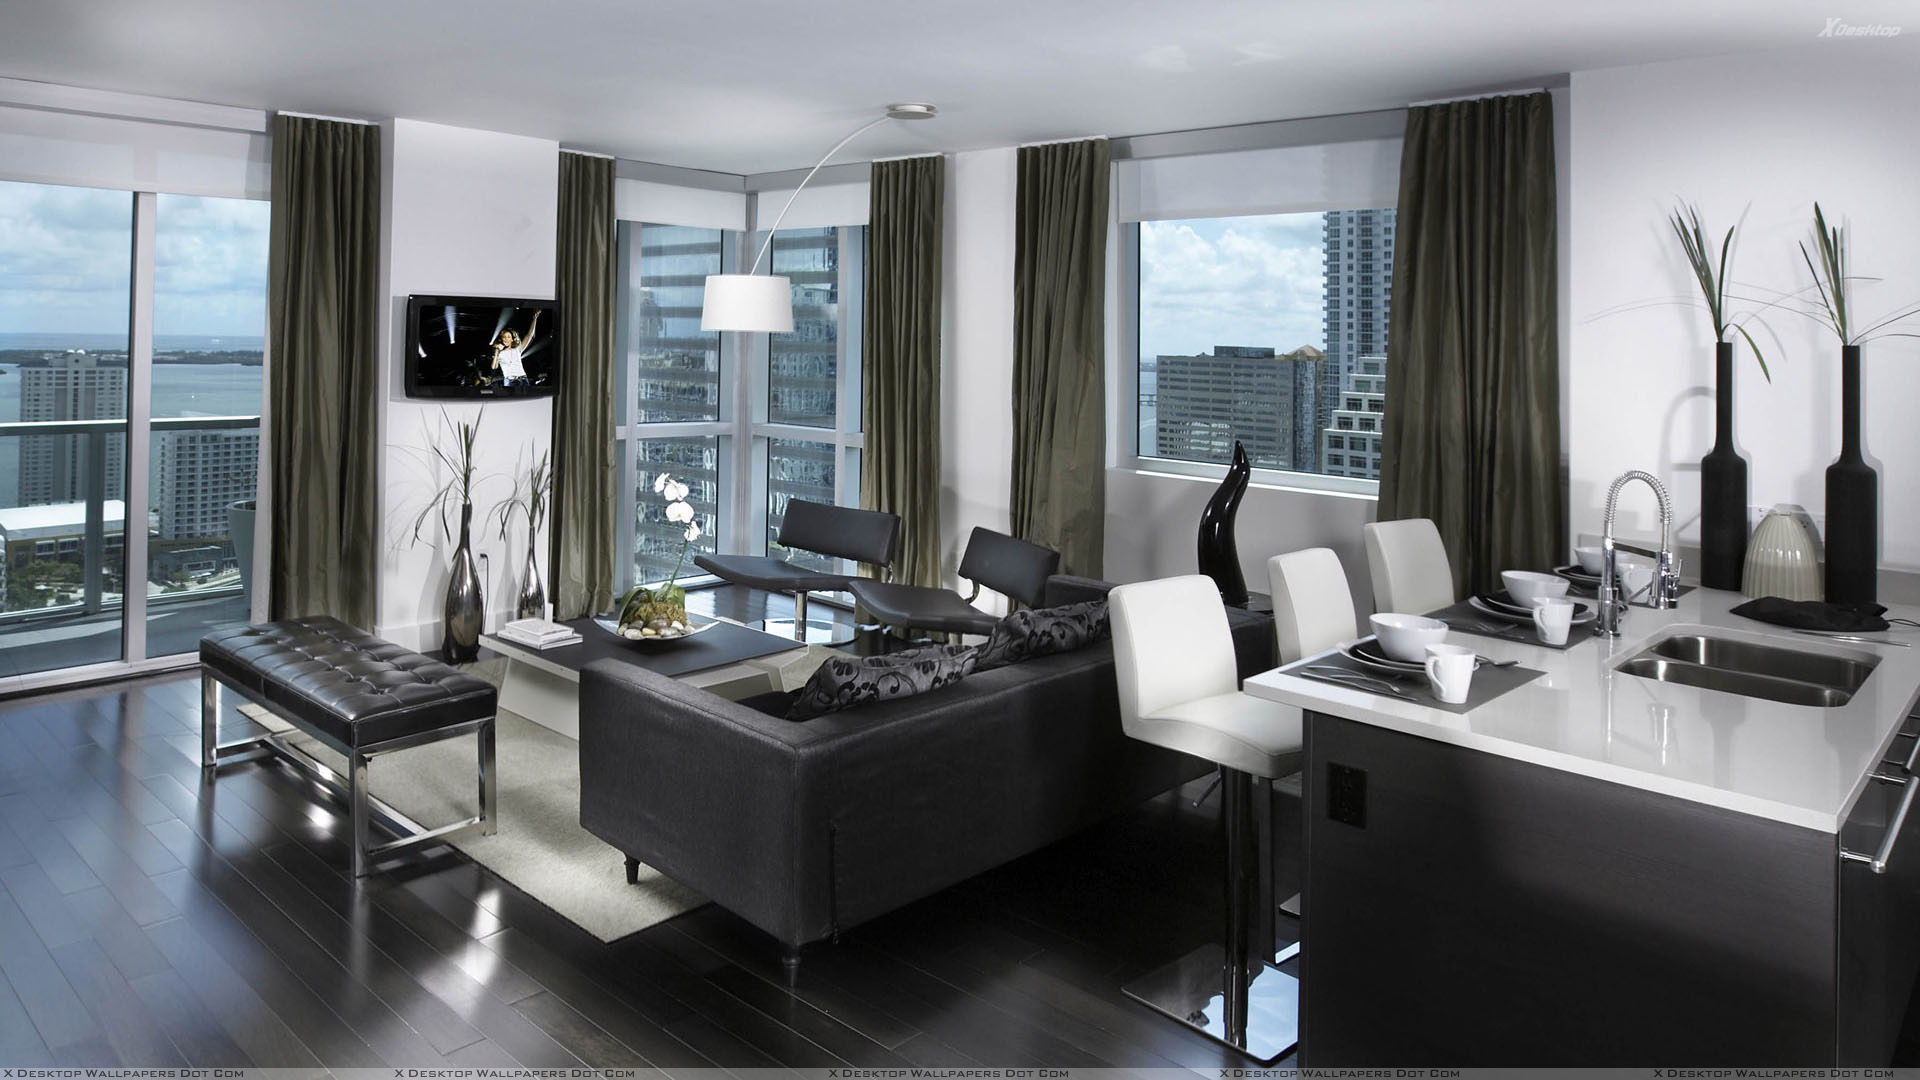 Black and white nice apartment interior wallpaper for Black in interior design